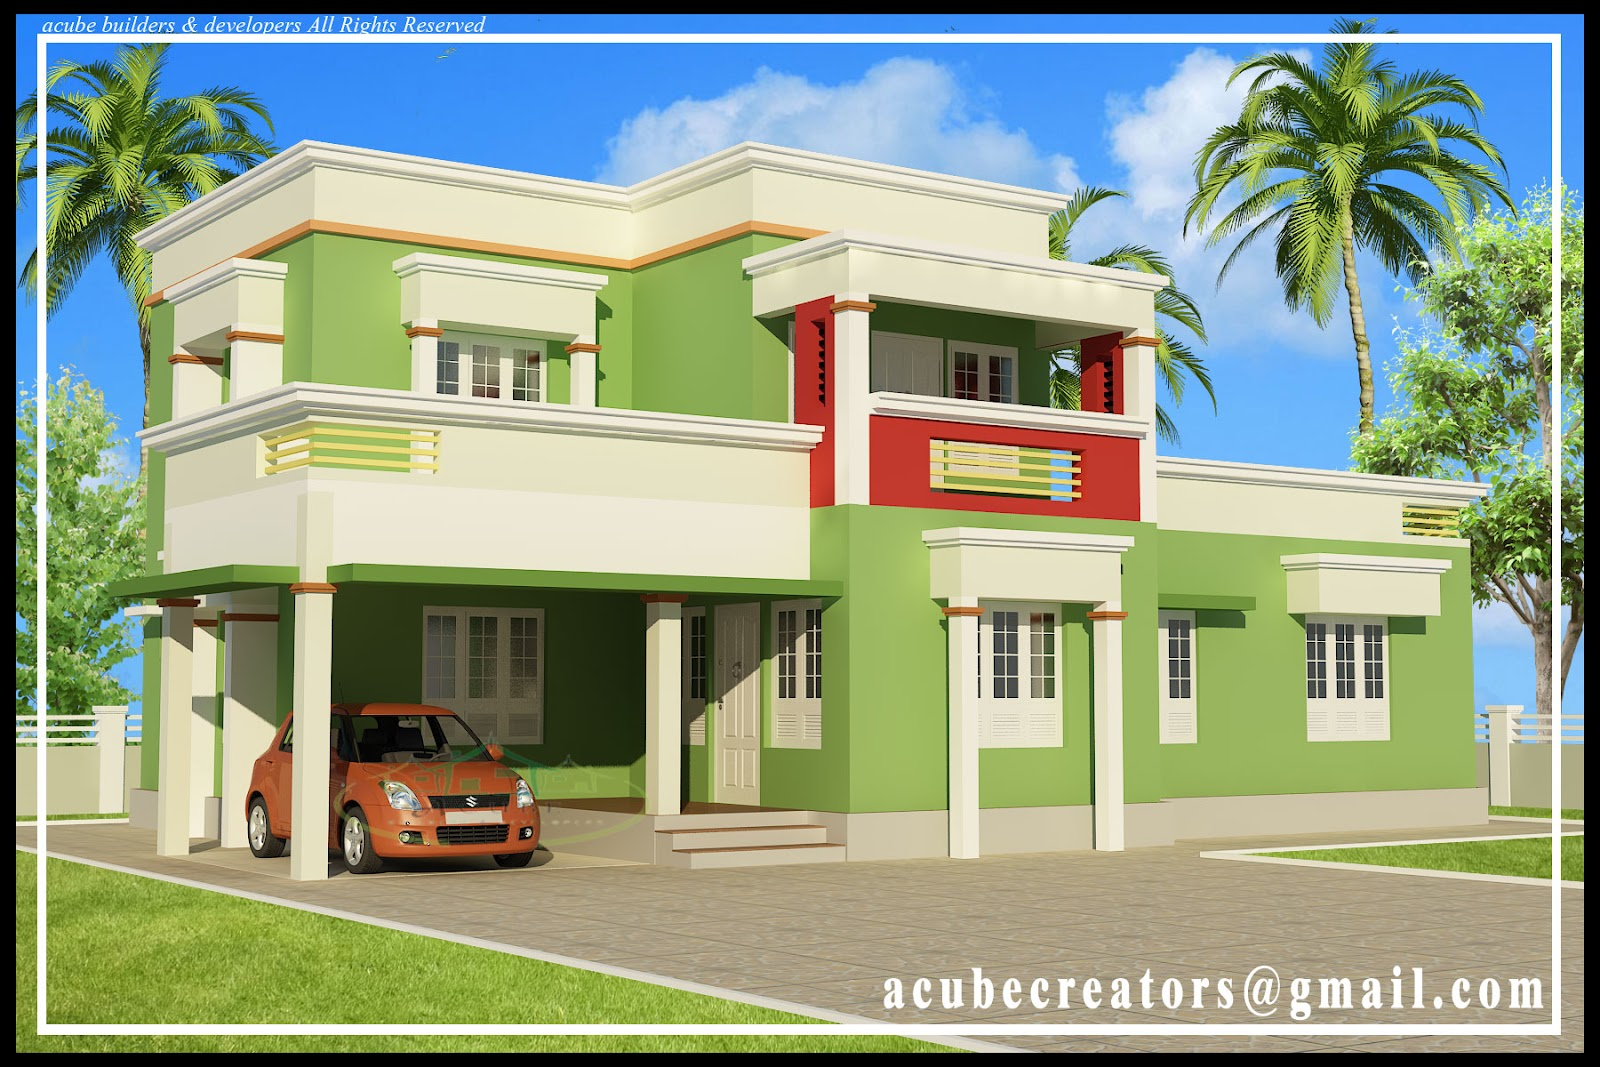 Simple cute modern home design 1879 sq ft plan 136 acube builders developers Easy home design program